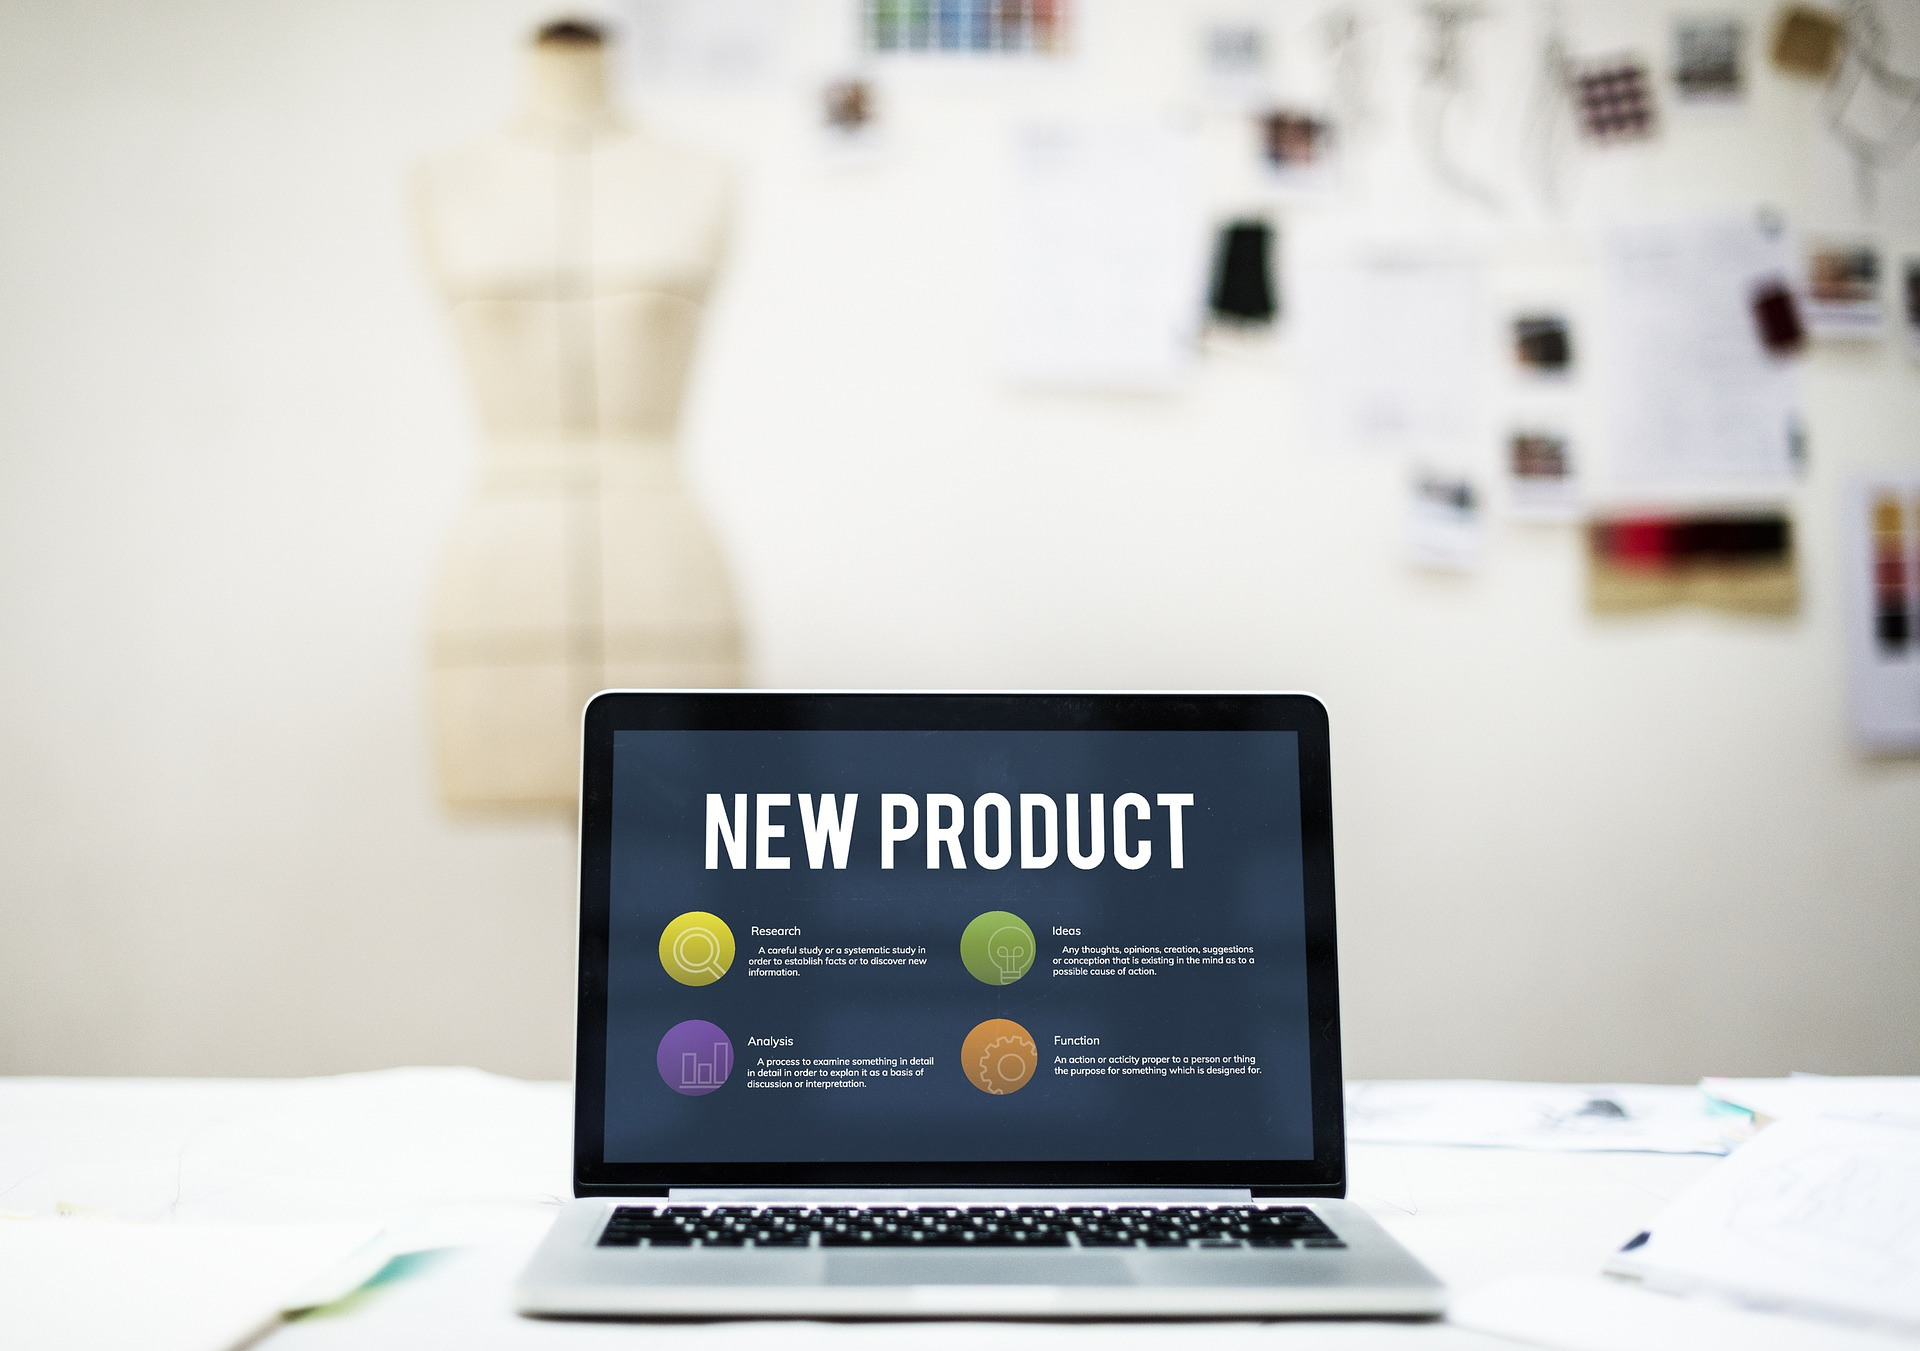 6 Branding Mistakes Online Retailers Need to Stop Making